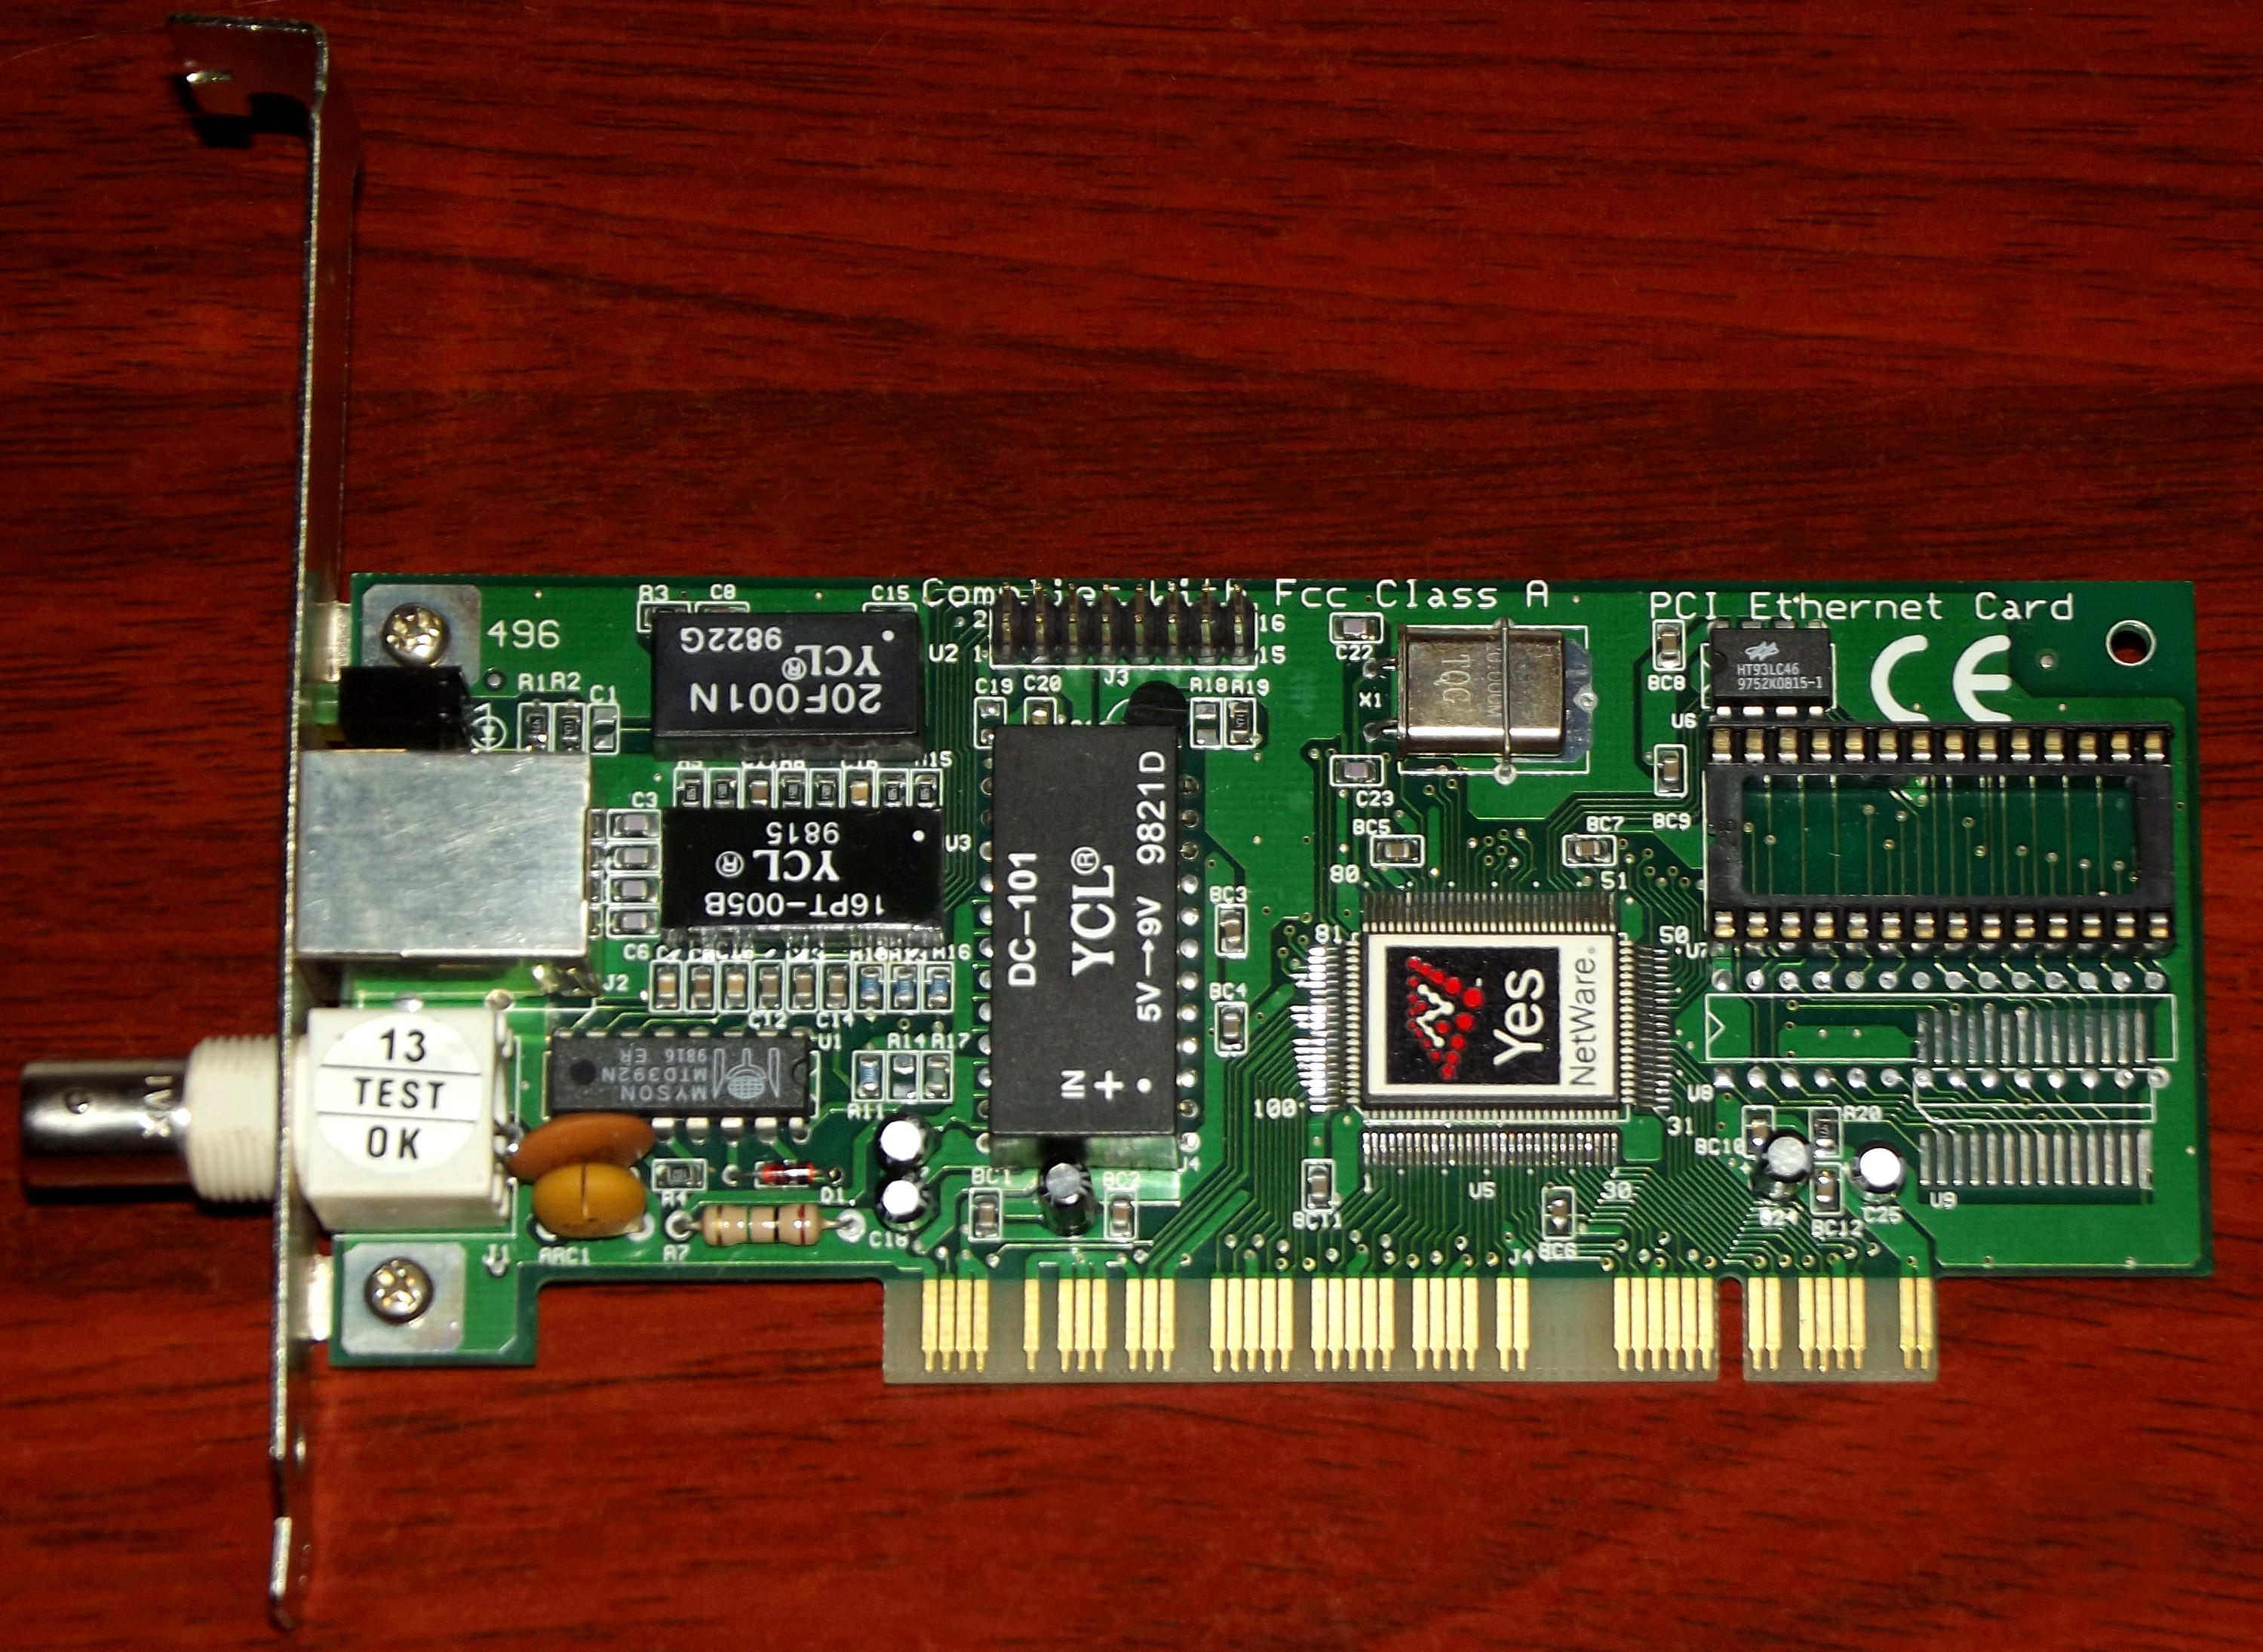 ATI Network Adapter Devices - driverserve